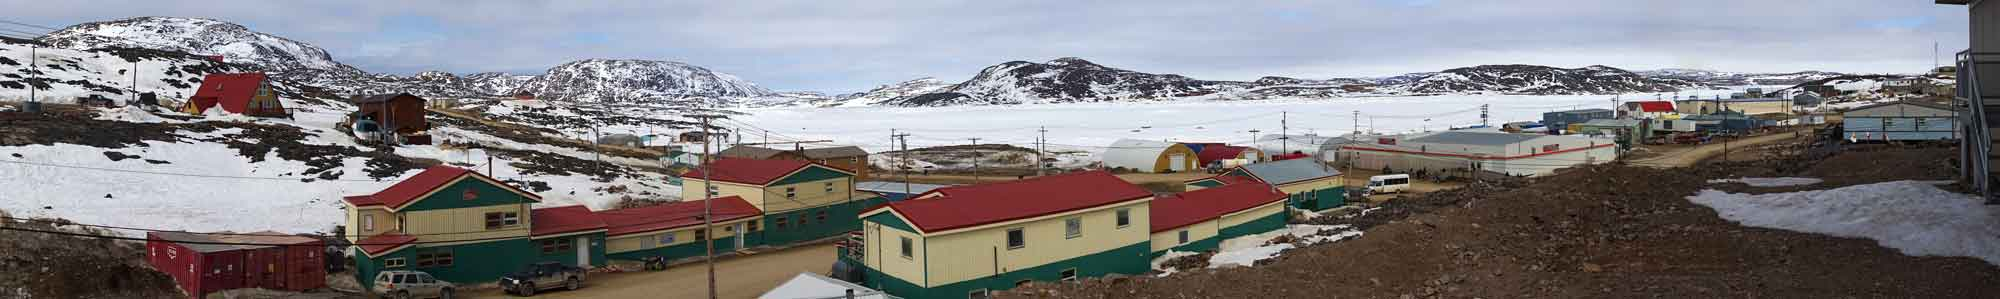 Panoramic view of Kinngait Arts and kellit bay, Cape Dorset. Photo: Christine Montague 2014